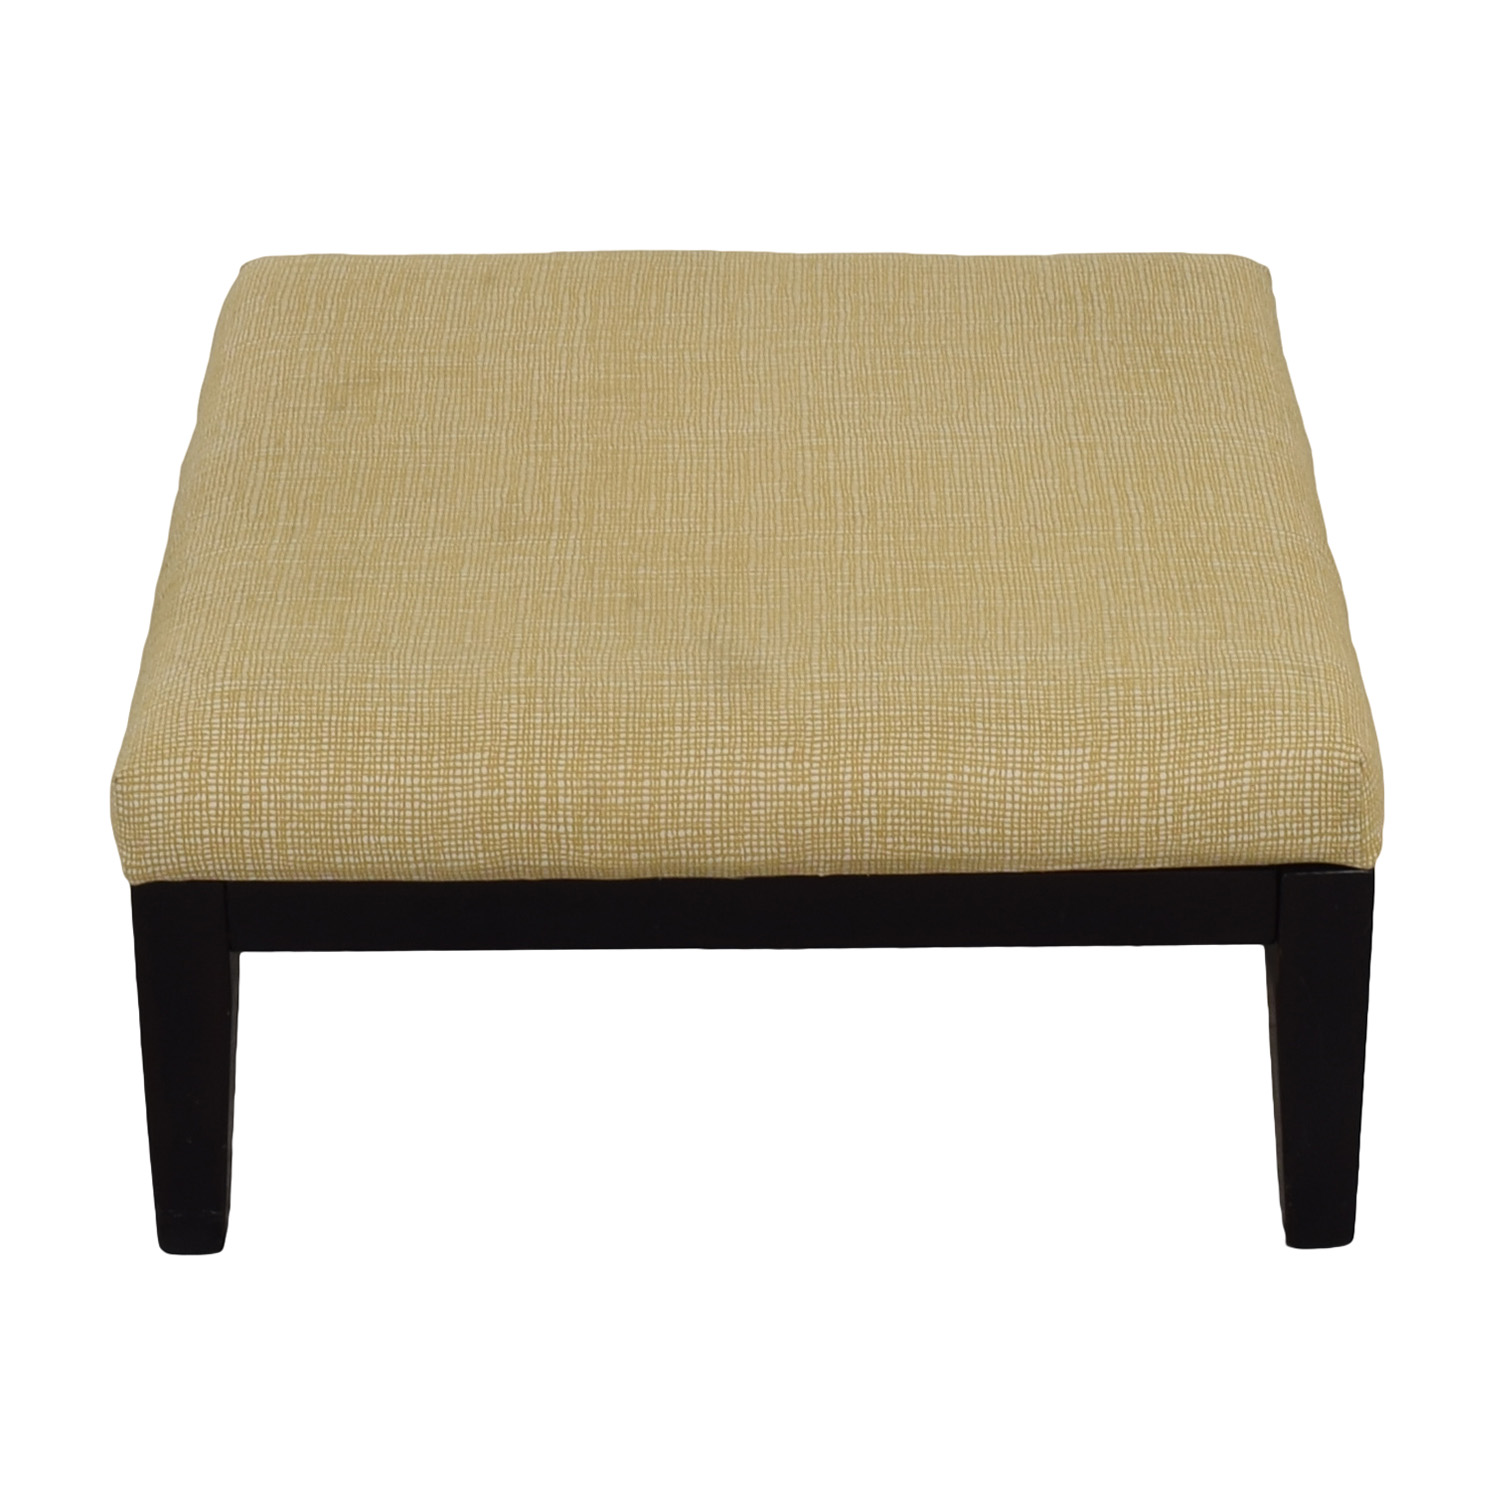 Ashley Furniture Ashley Furniture Beige Ottoman coupon